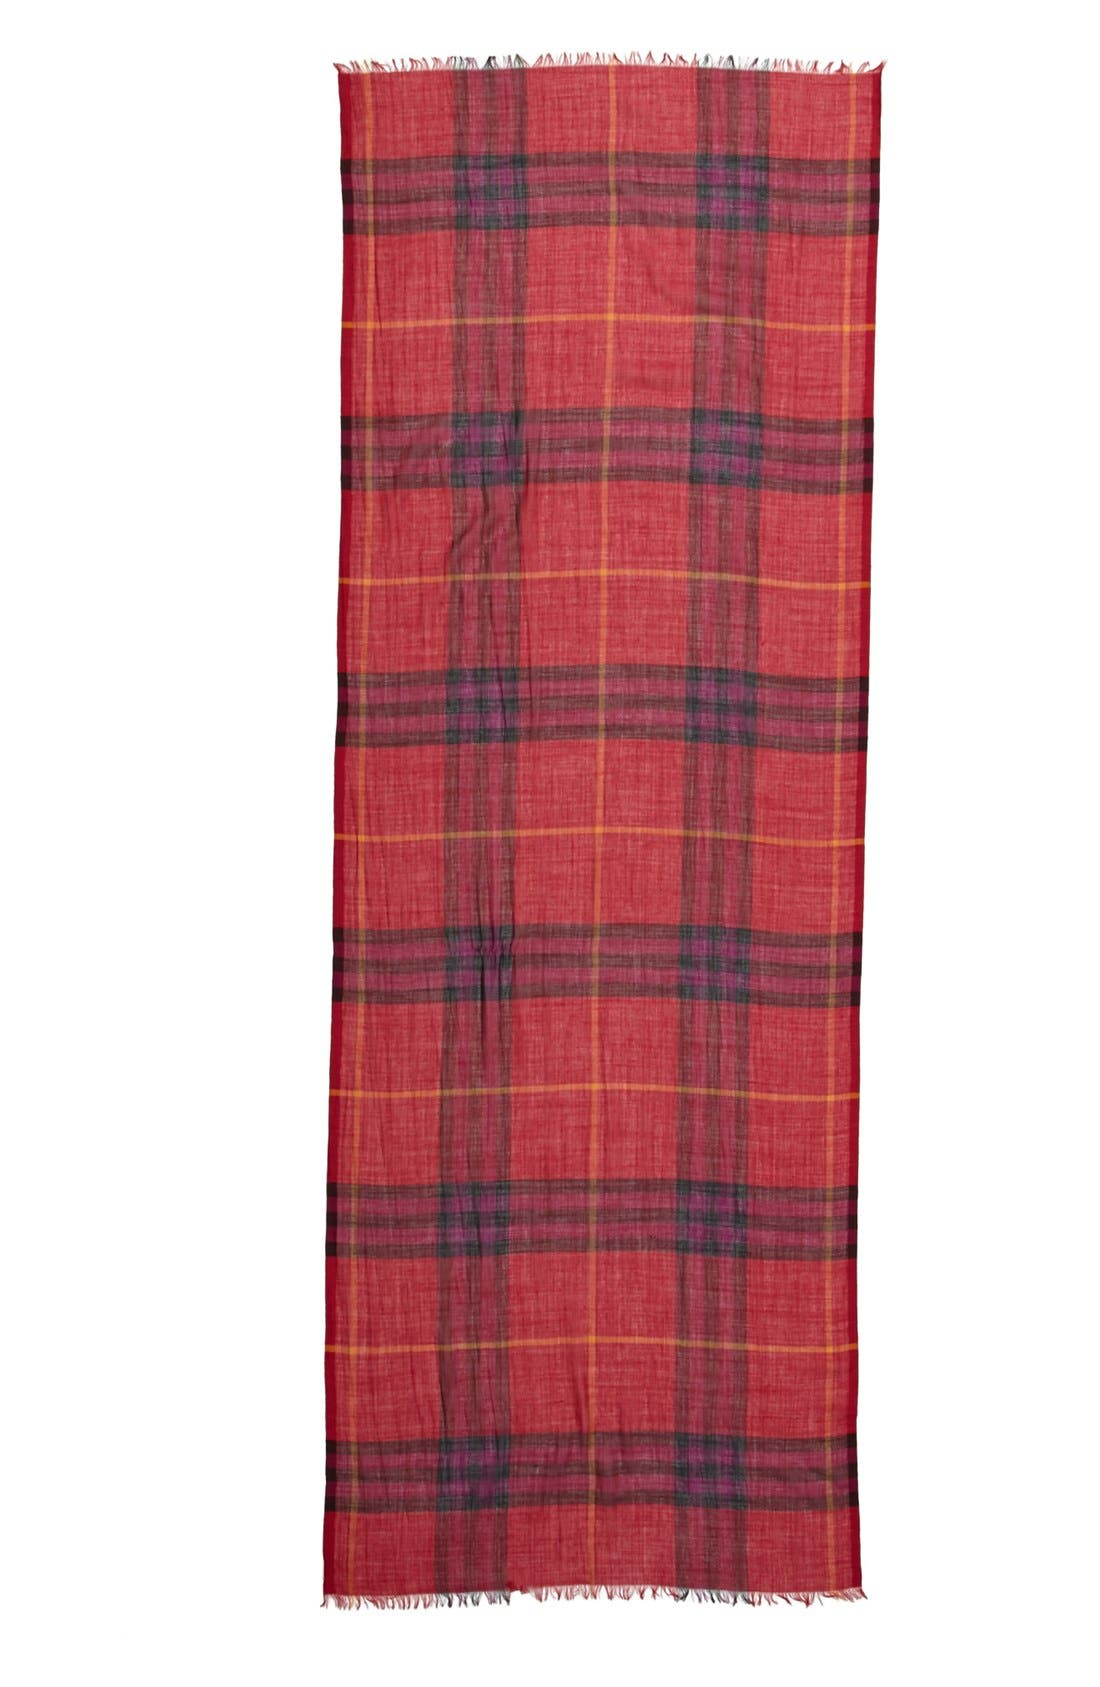 Giant Check Print Wool & Silk Scarf,                             Alternate thumbnail 112, color,